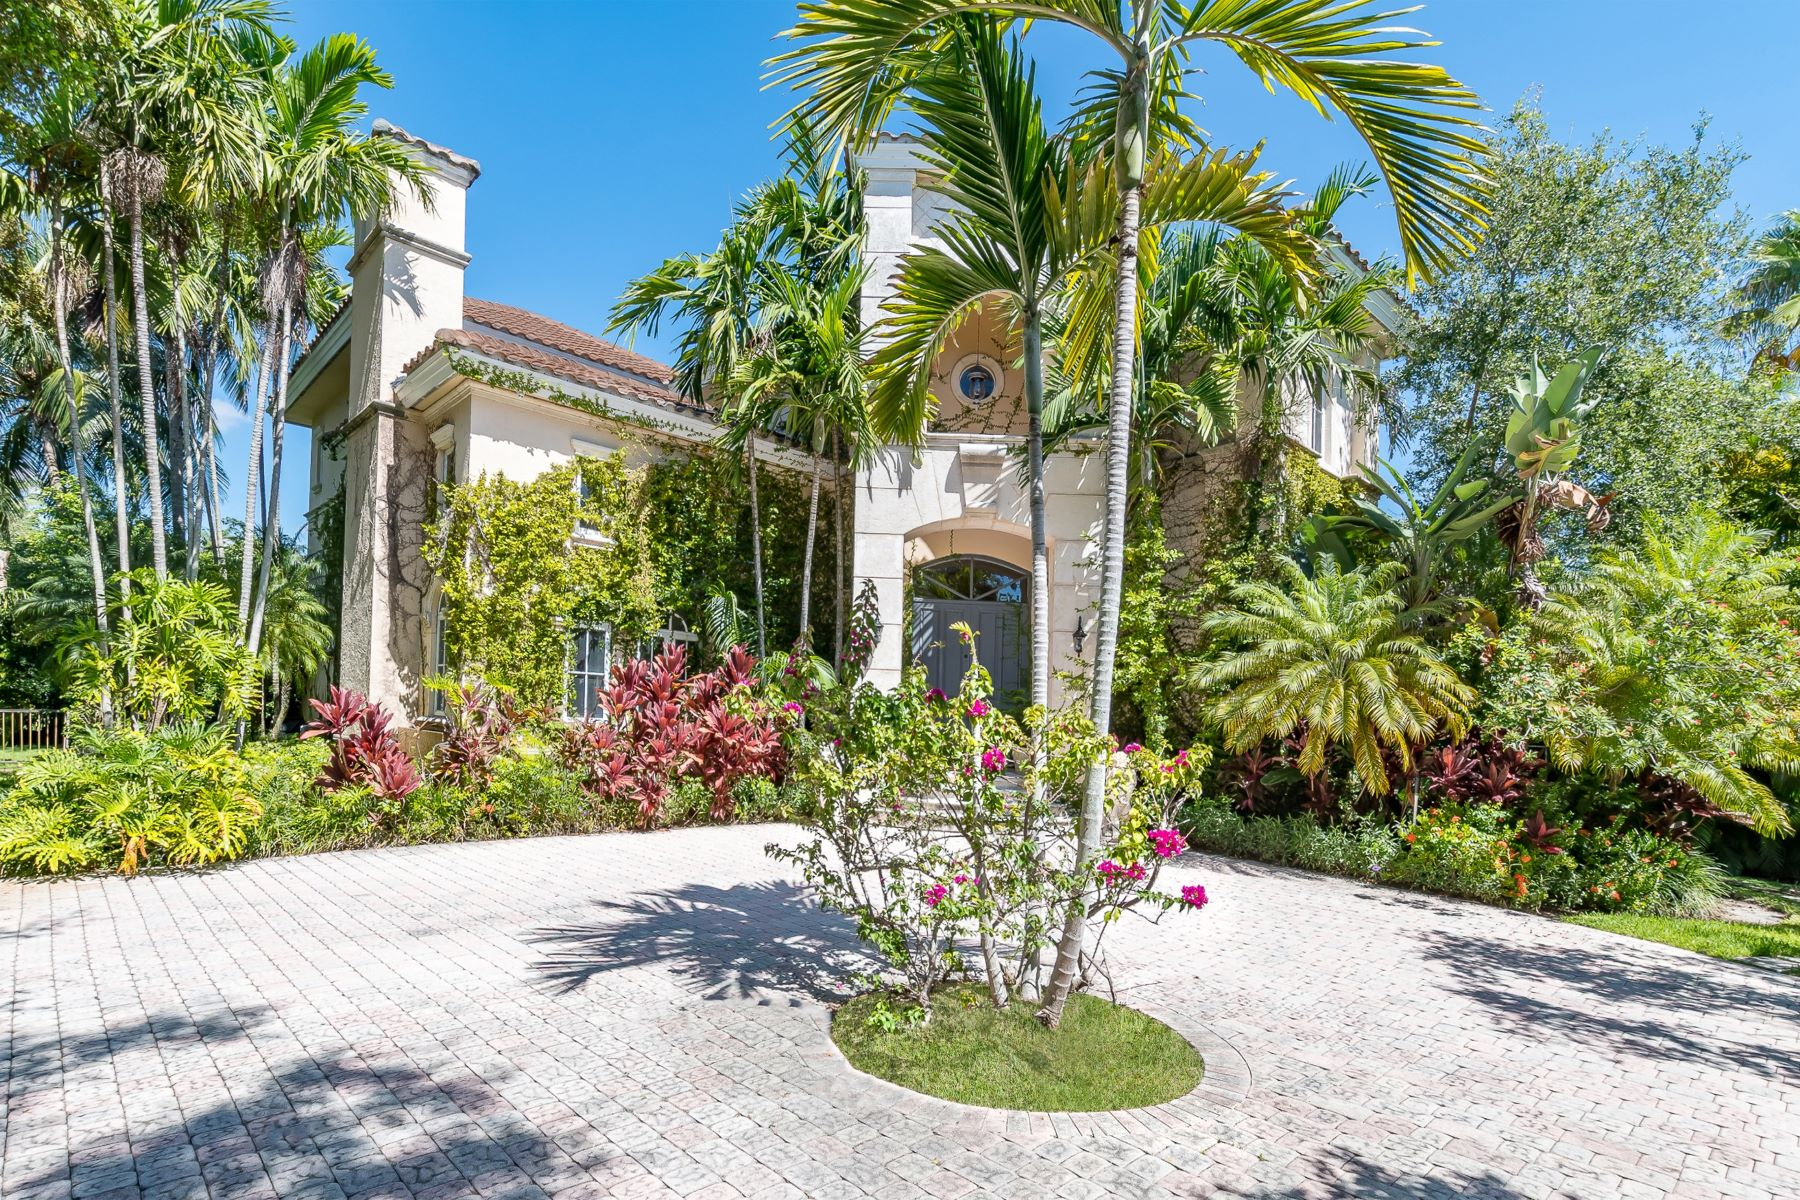 Property for Sale at Coral Gables, Florida 33143 United States